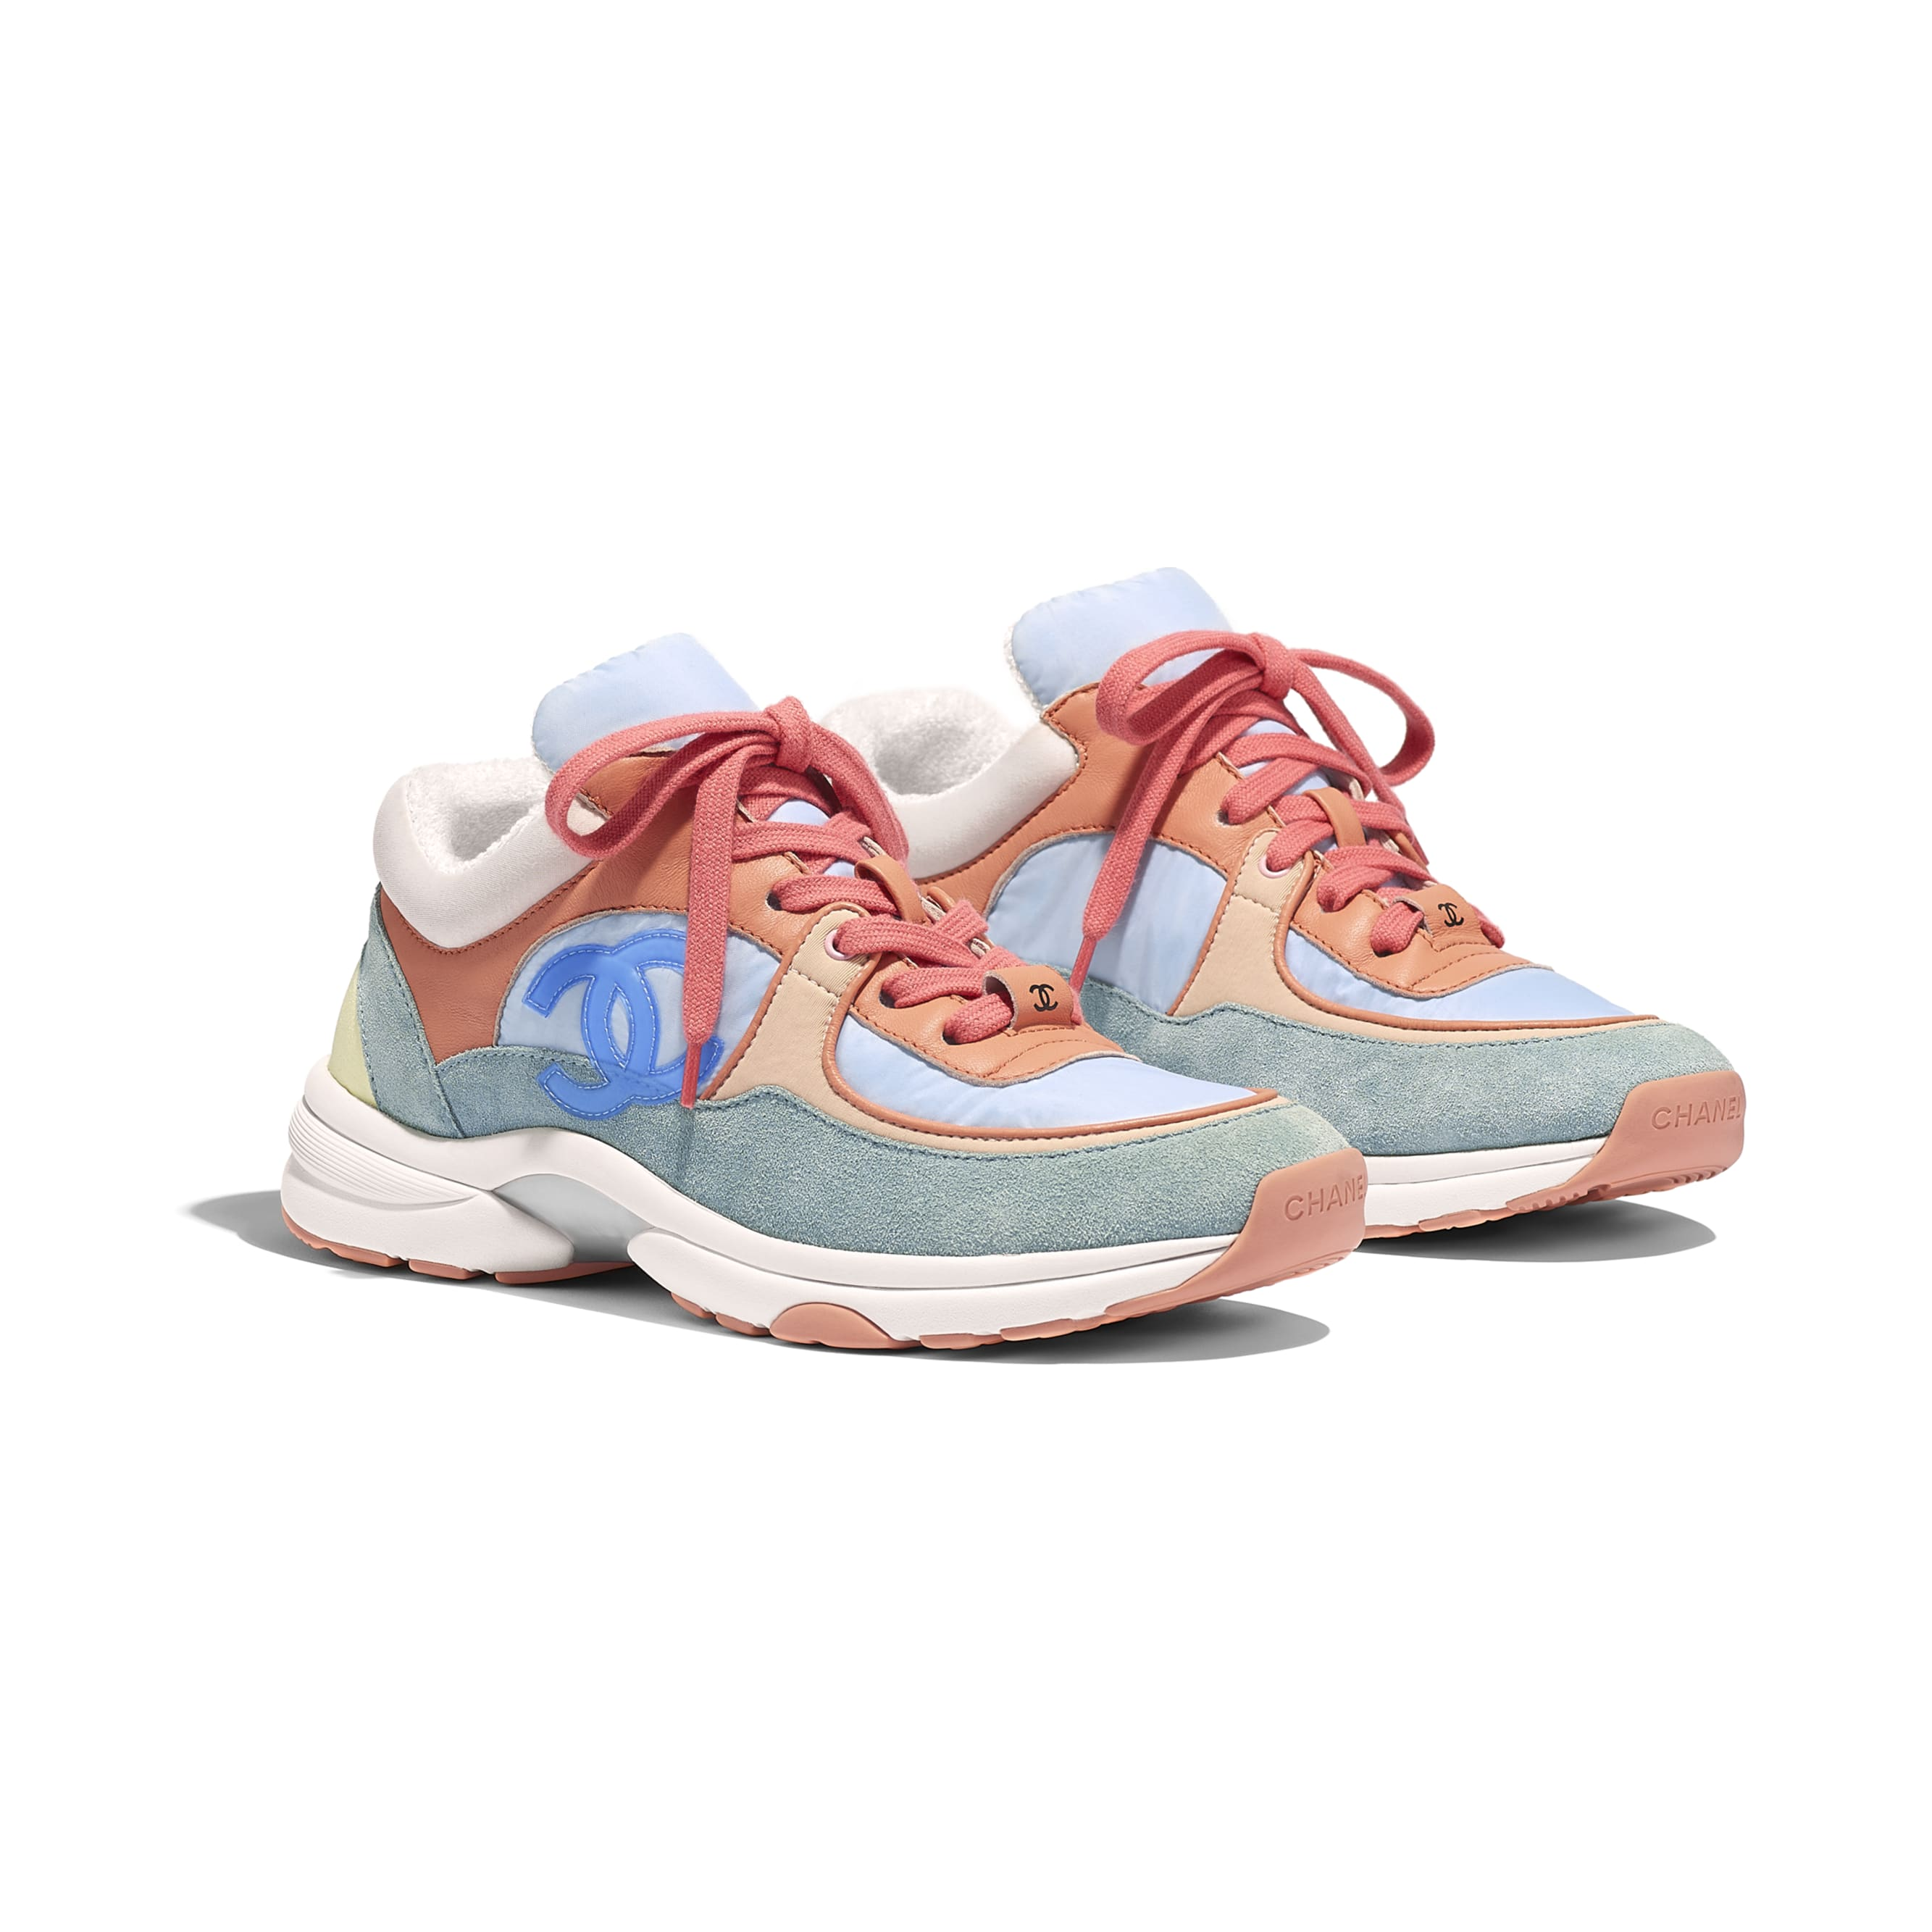 Sneakers - Coral, Light Blue & White - Nylon, Lambskin & Suede Calfskin - Alternative view - see standard sized version